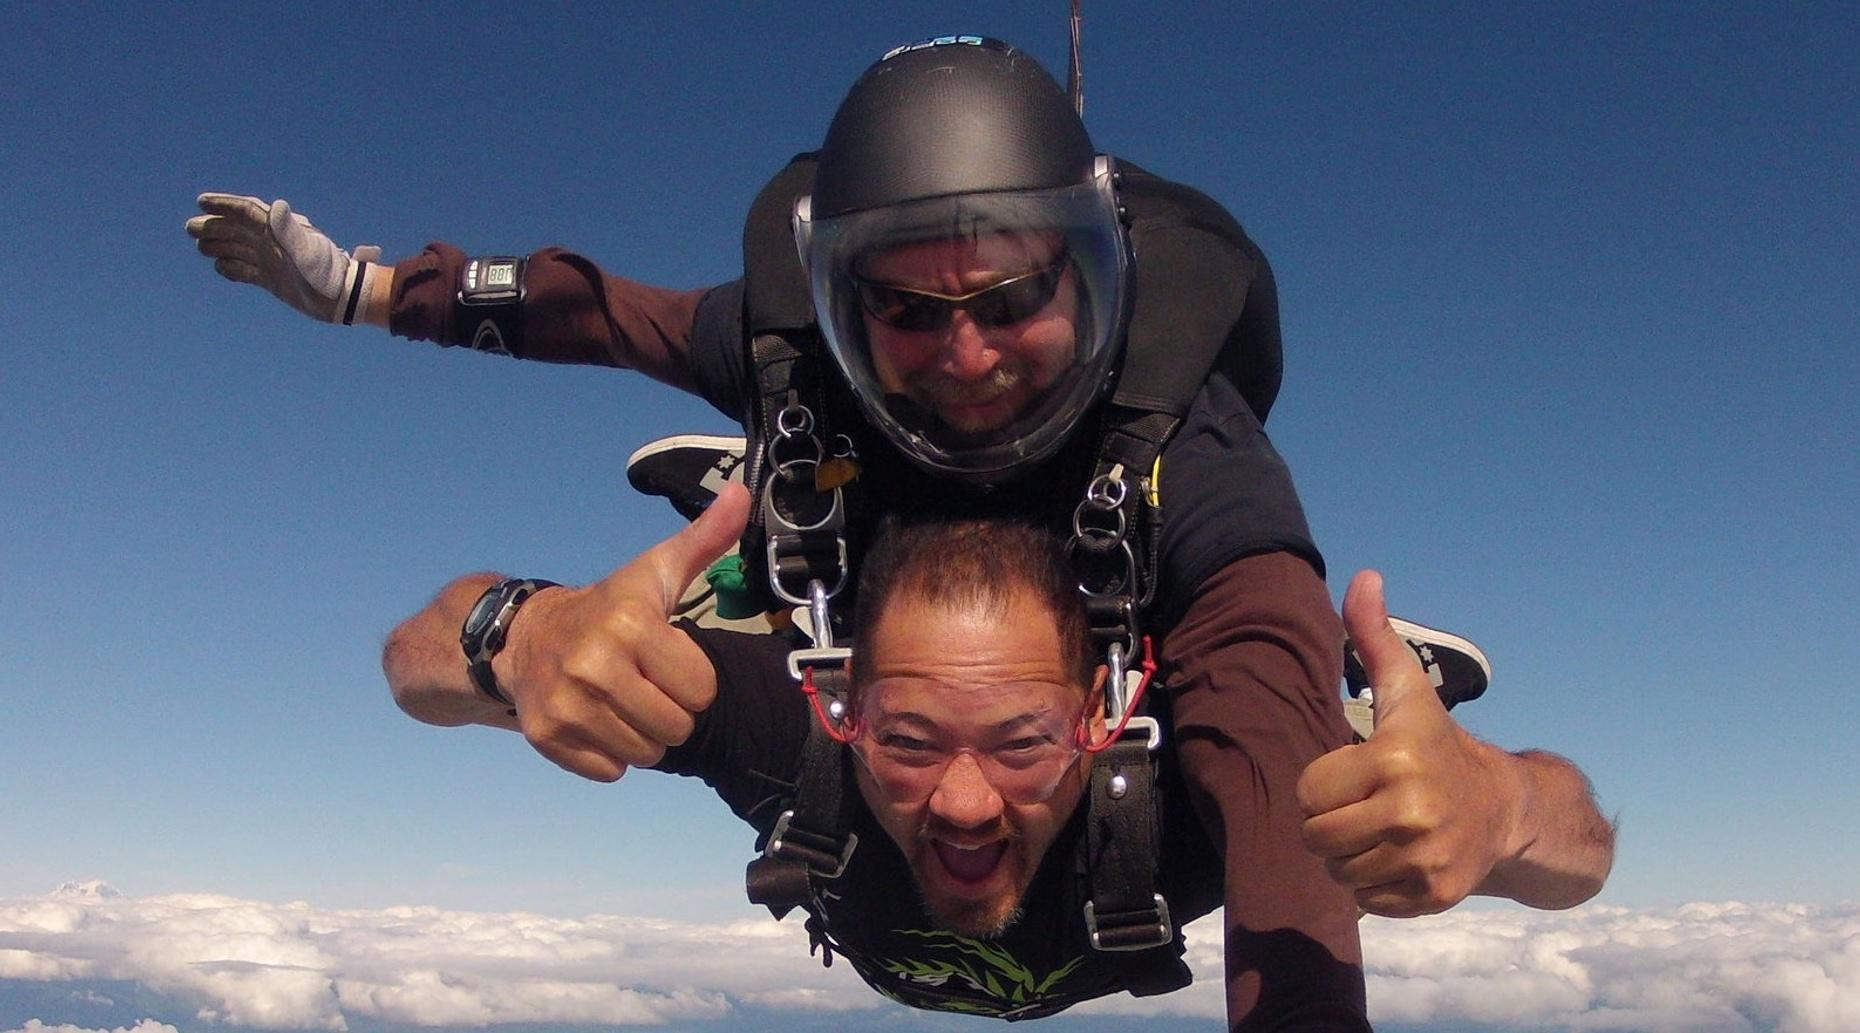 10,500ft Tandem Skydive in Toledo